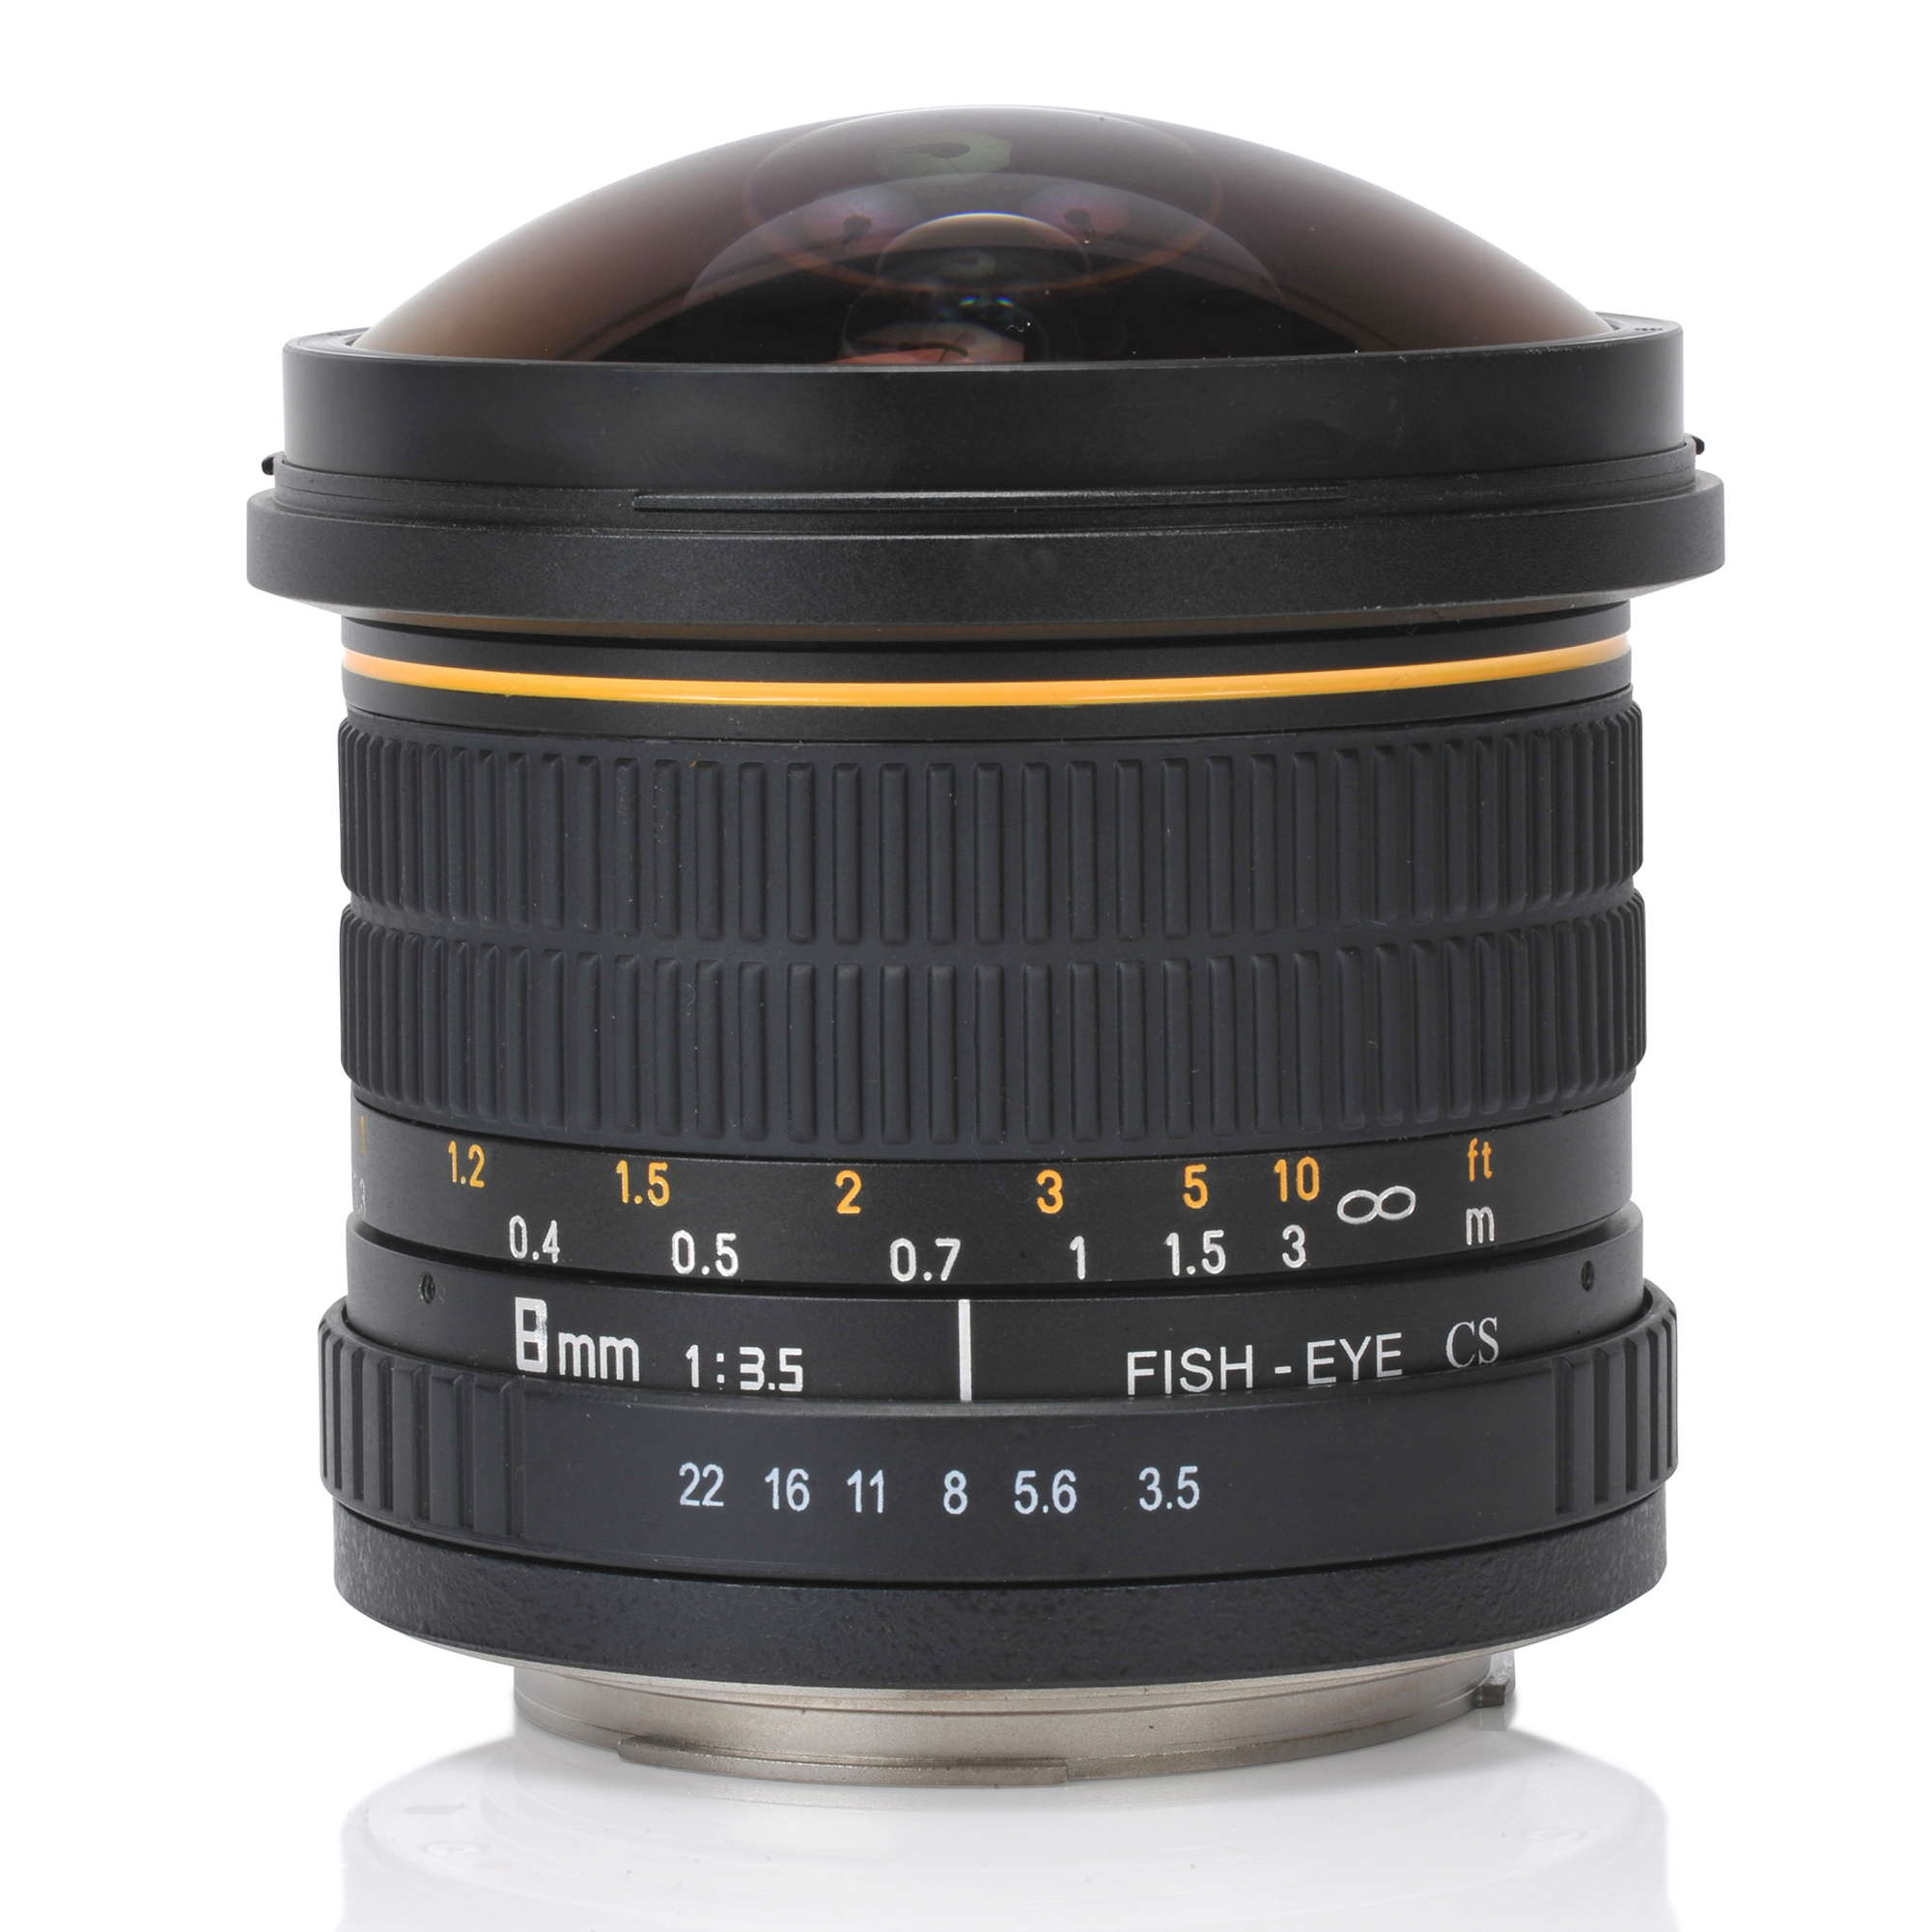 Oshiro 8mm f/3.5 Wide Angle Super Fisheye Lens